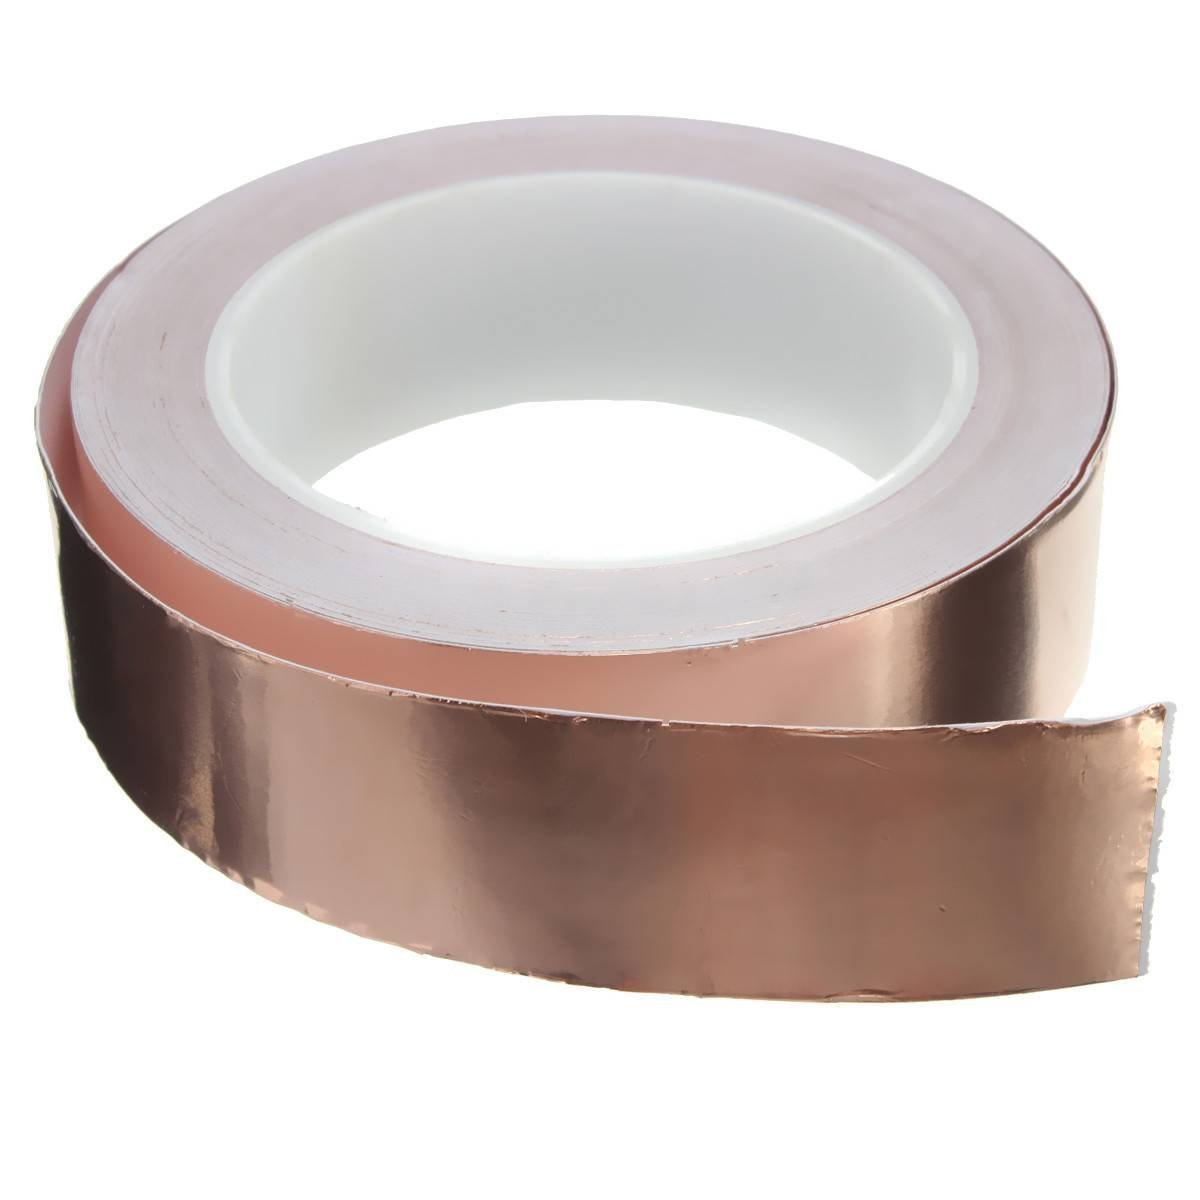 YONGER Copper Foil Tape with Conductive Adhesive - Stained Glass, Soldering, Electrical Repairs, Grounding, EMI Shielding (30mm X 20m)